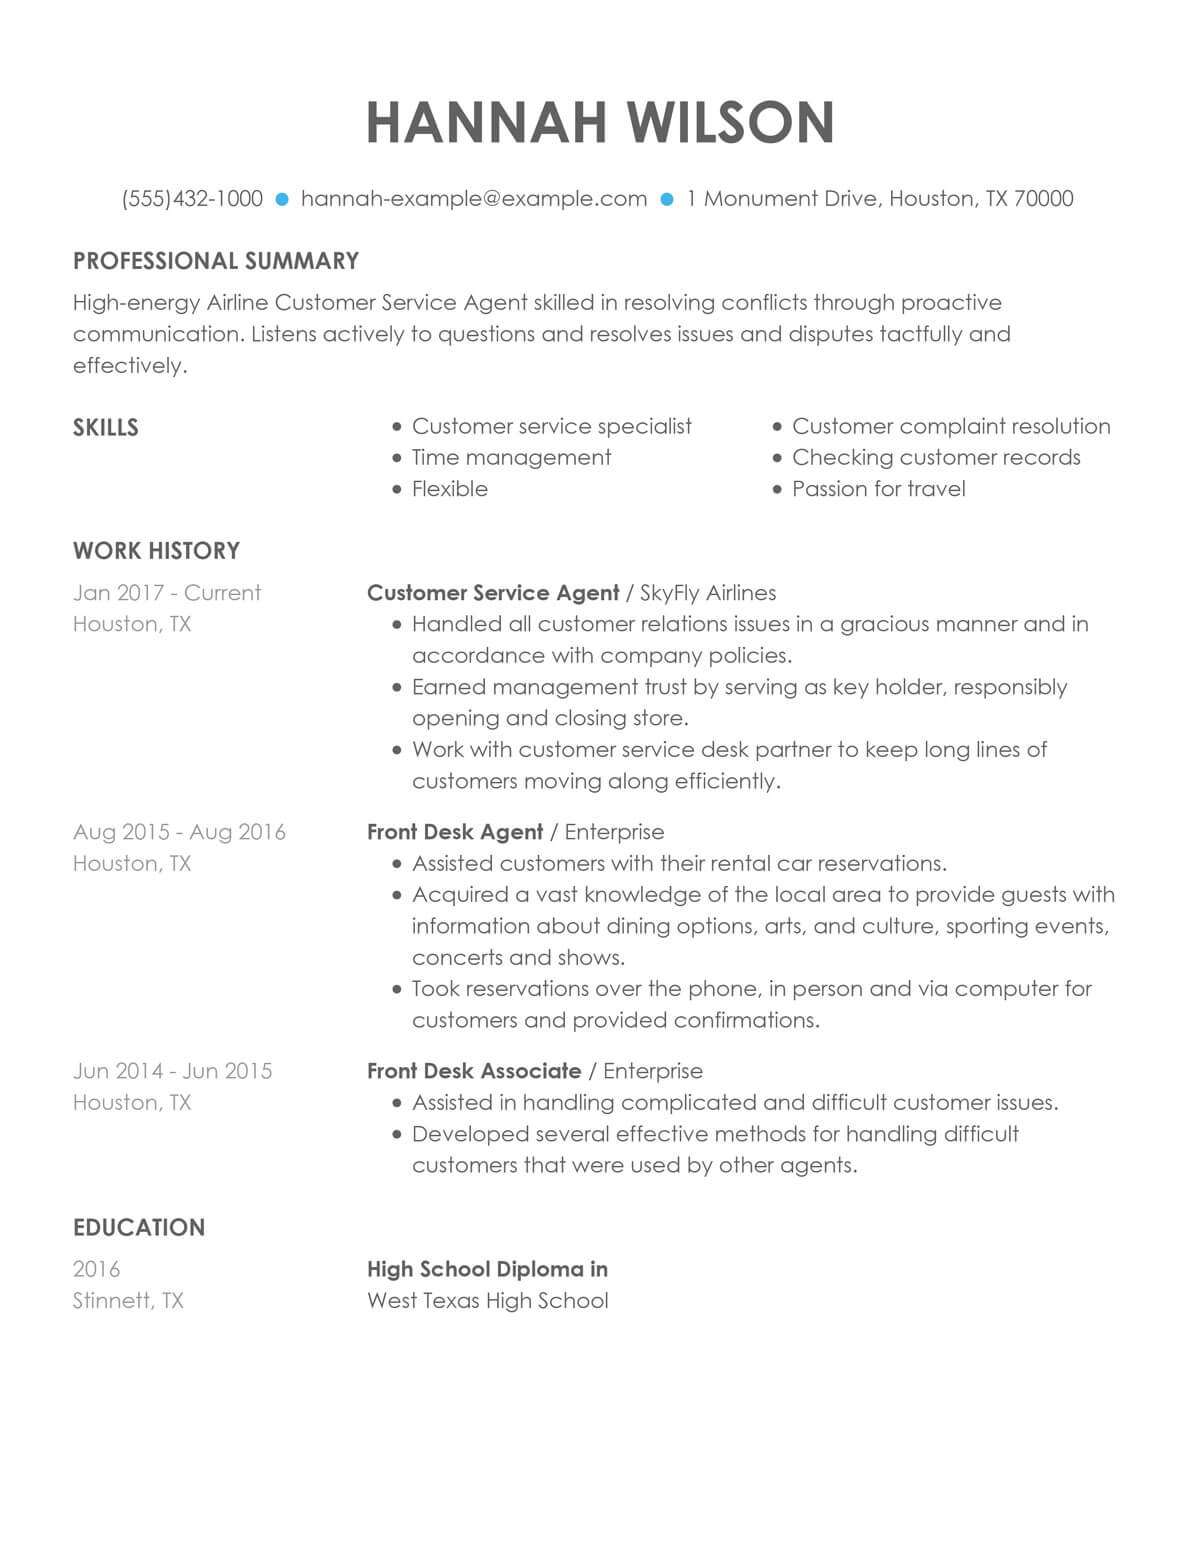 customize our customer representative resume example service ideas airline agent sample Resume Customer Service Resume Ideas